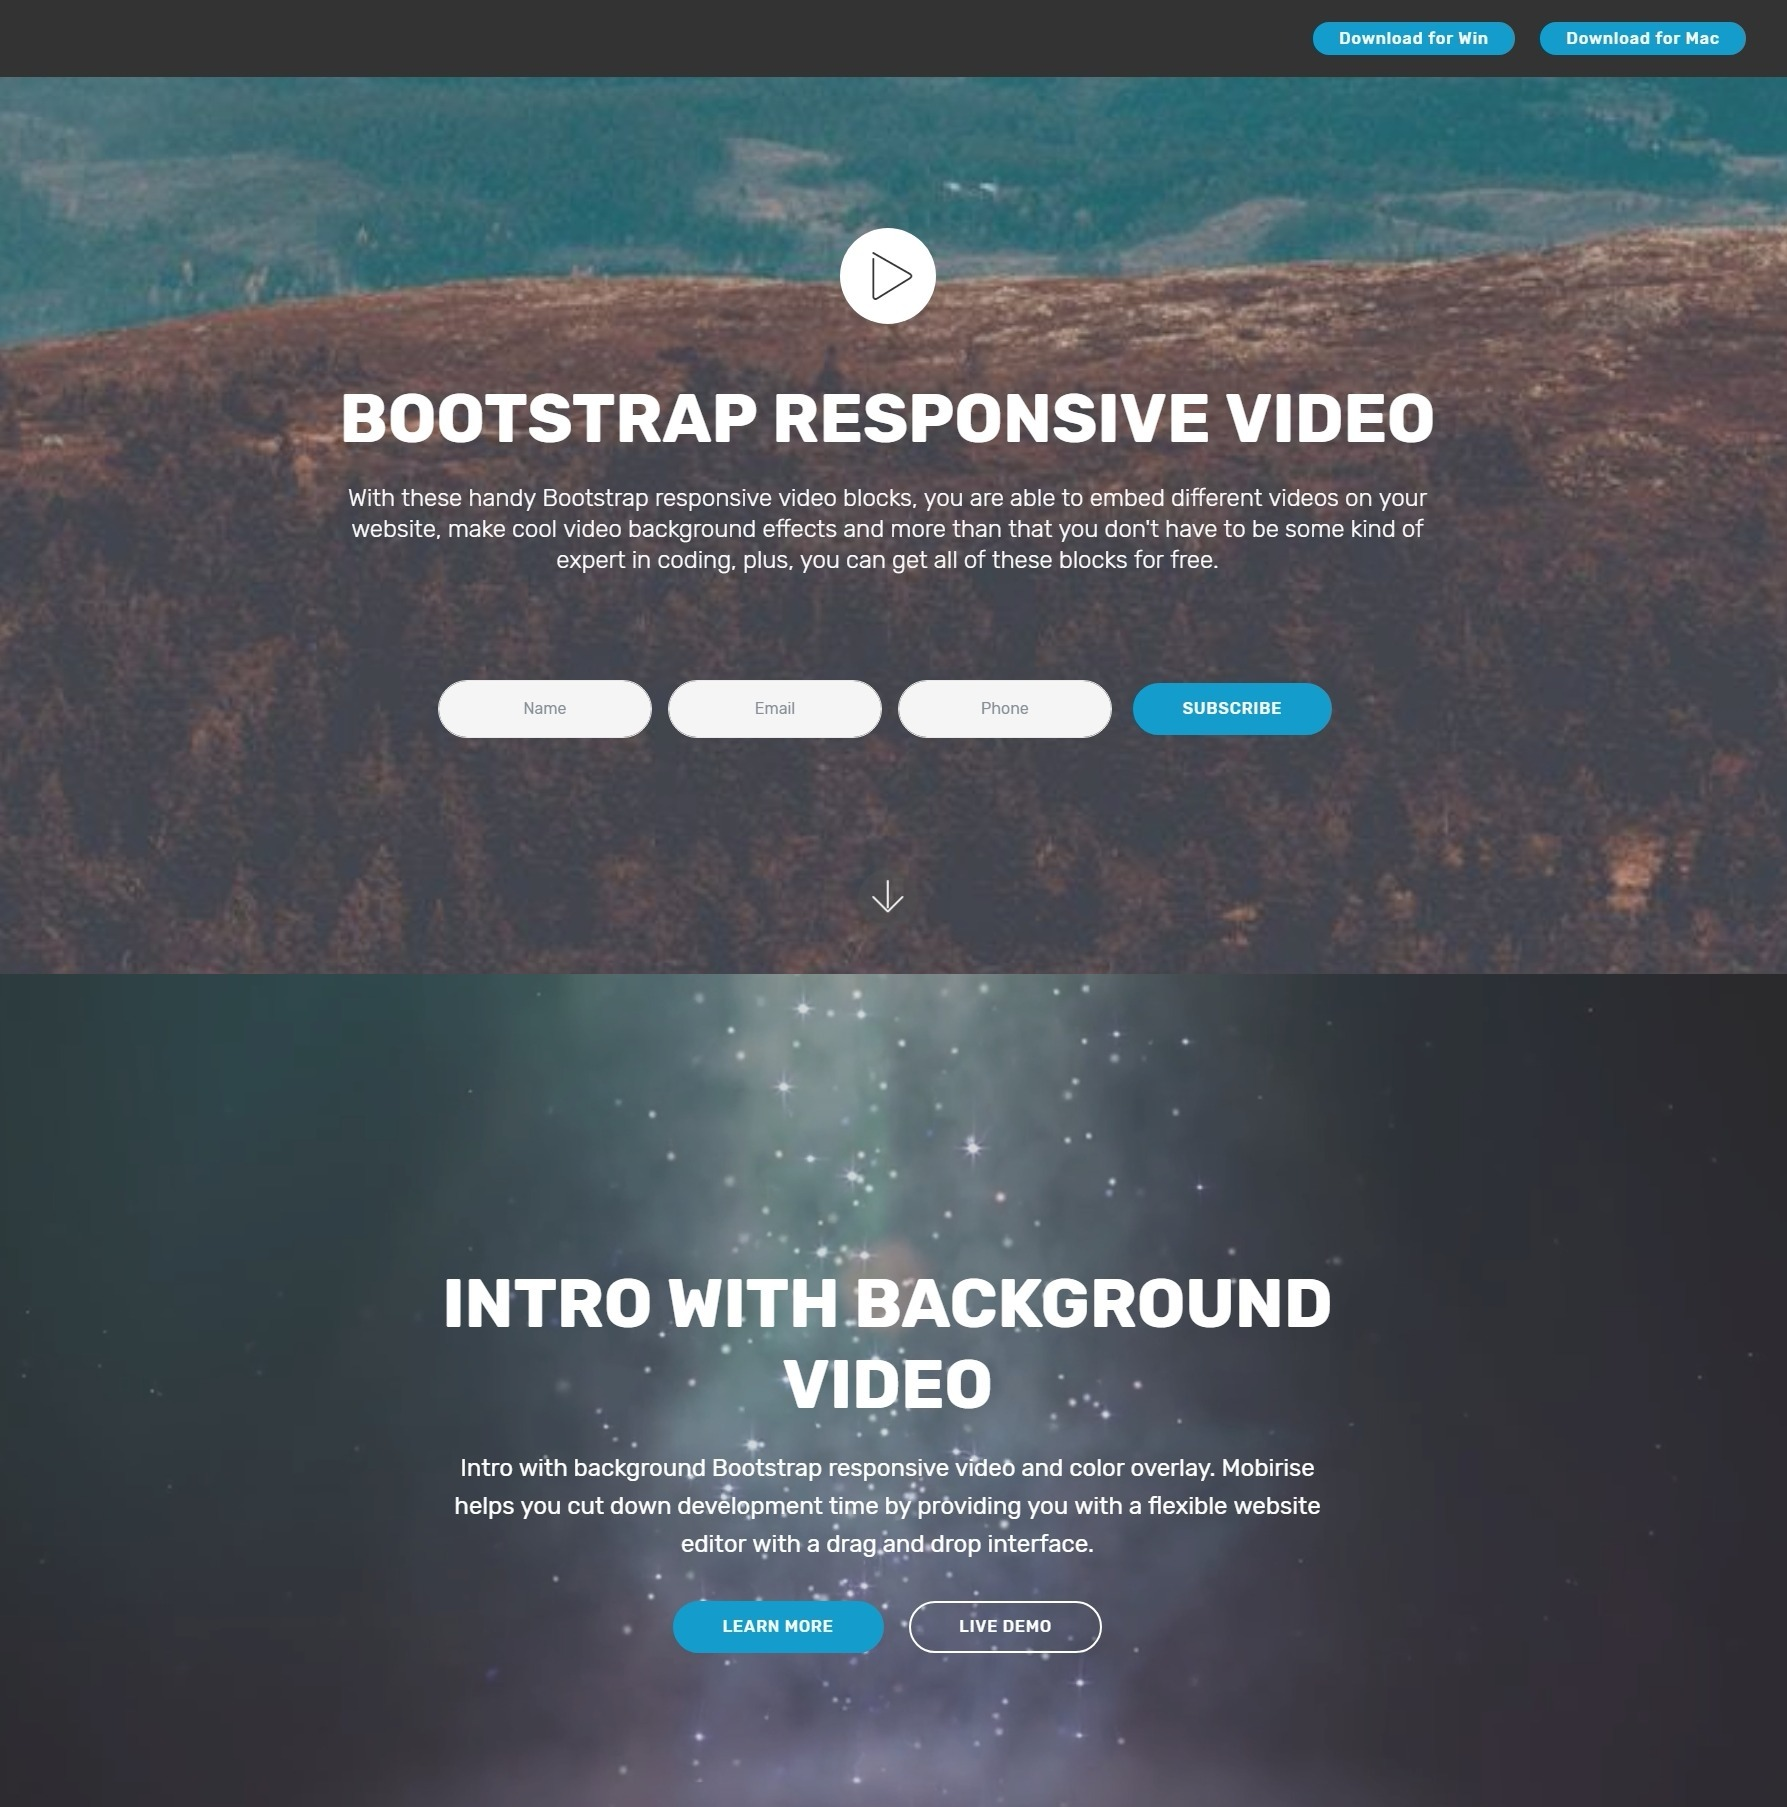 New and Beautiful HTML5 Bootstrap Carousel Video Players ...